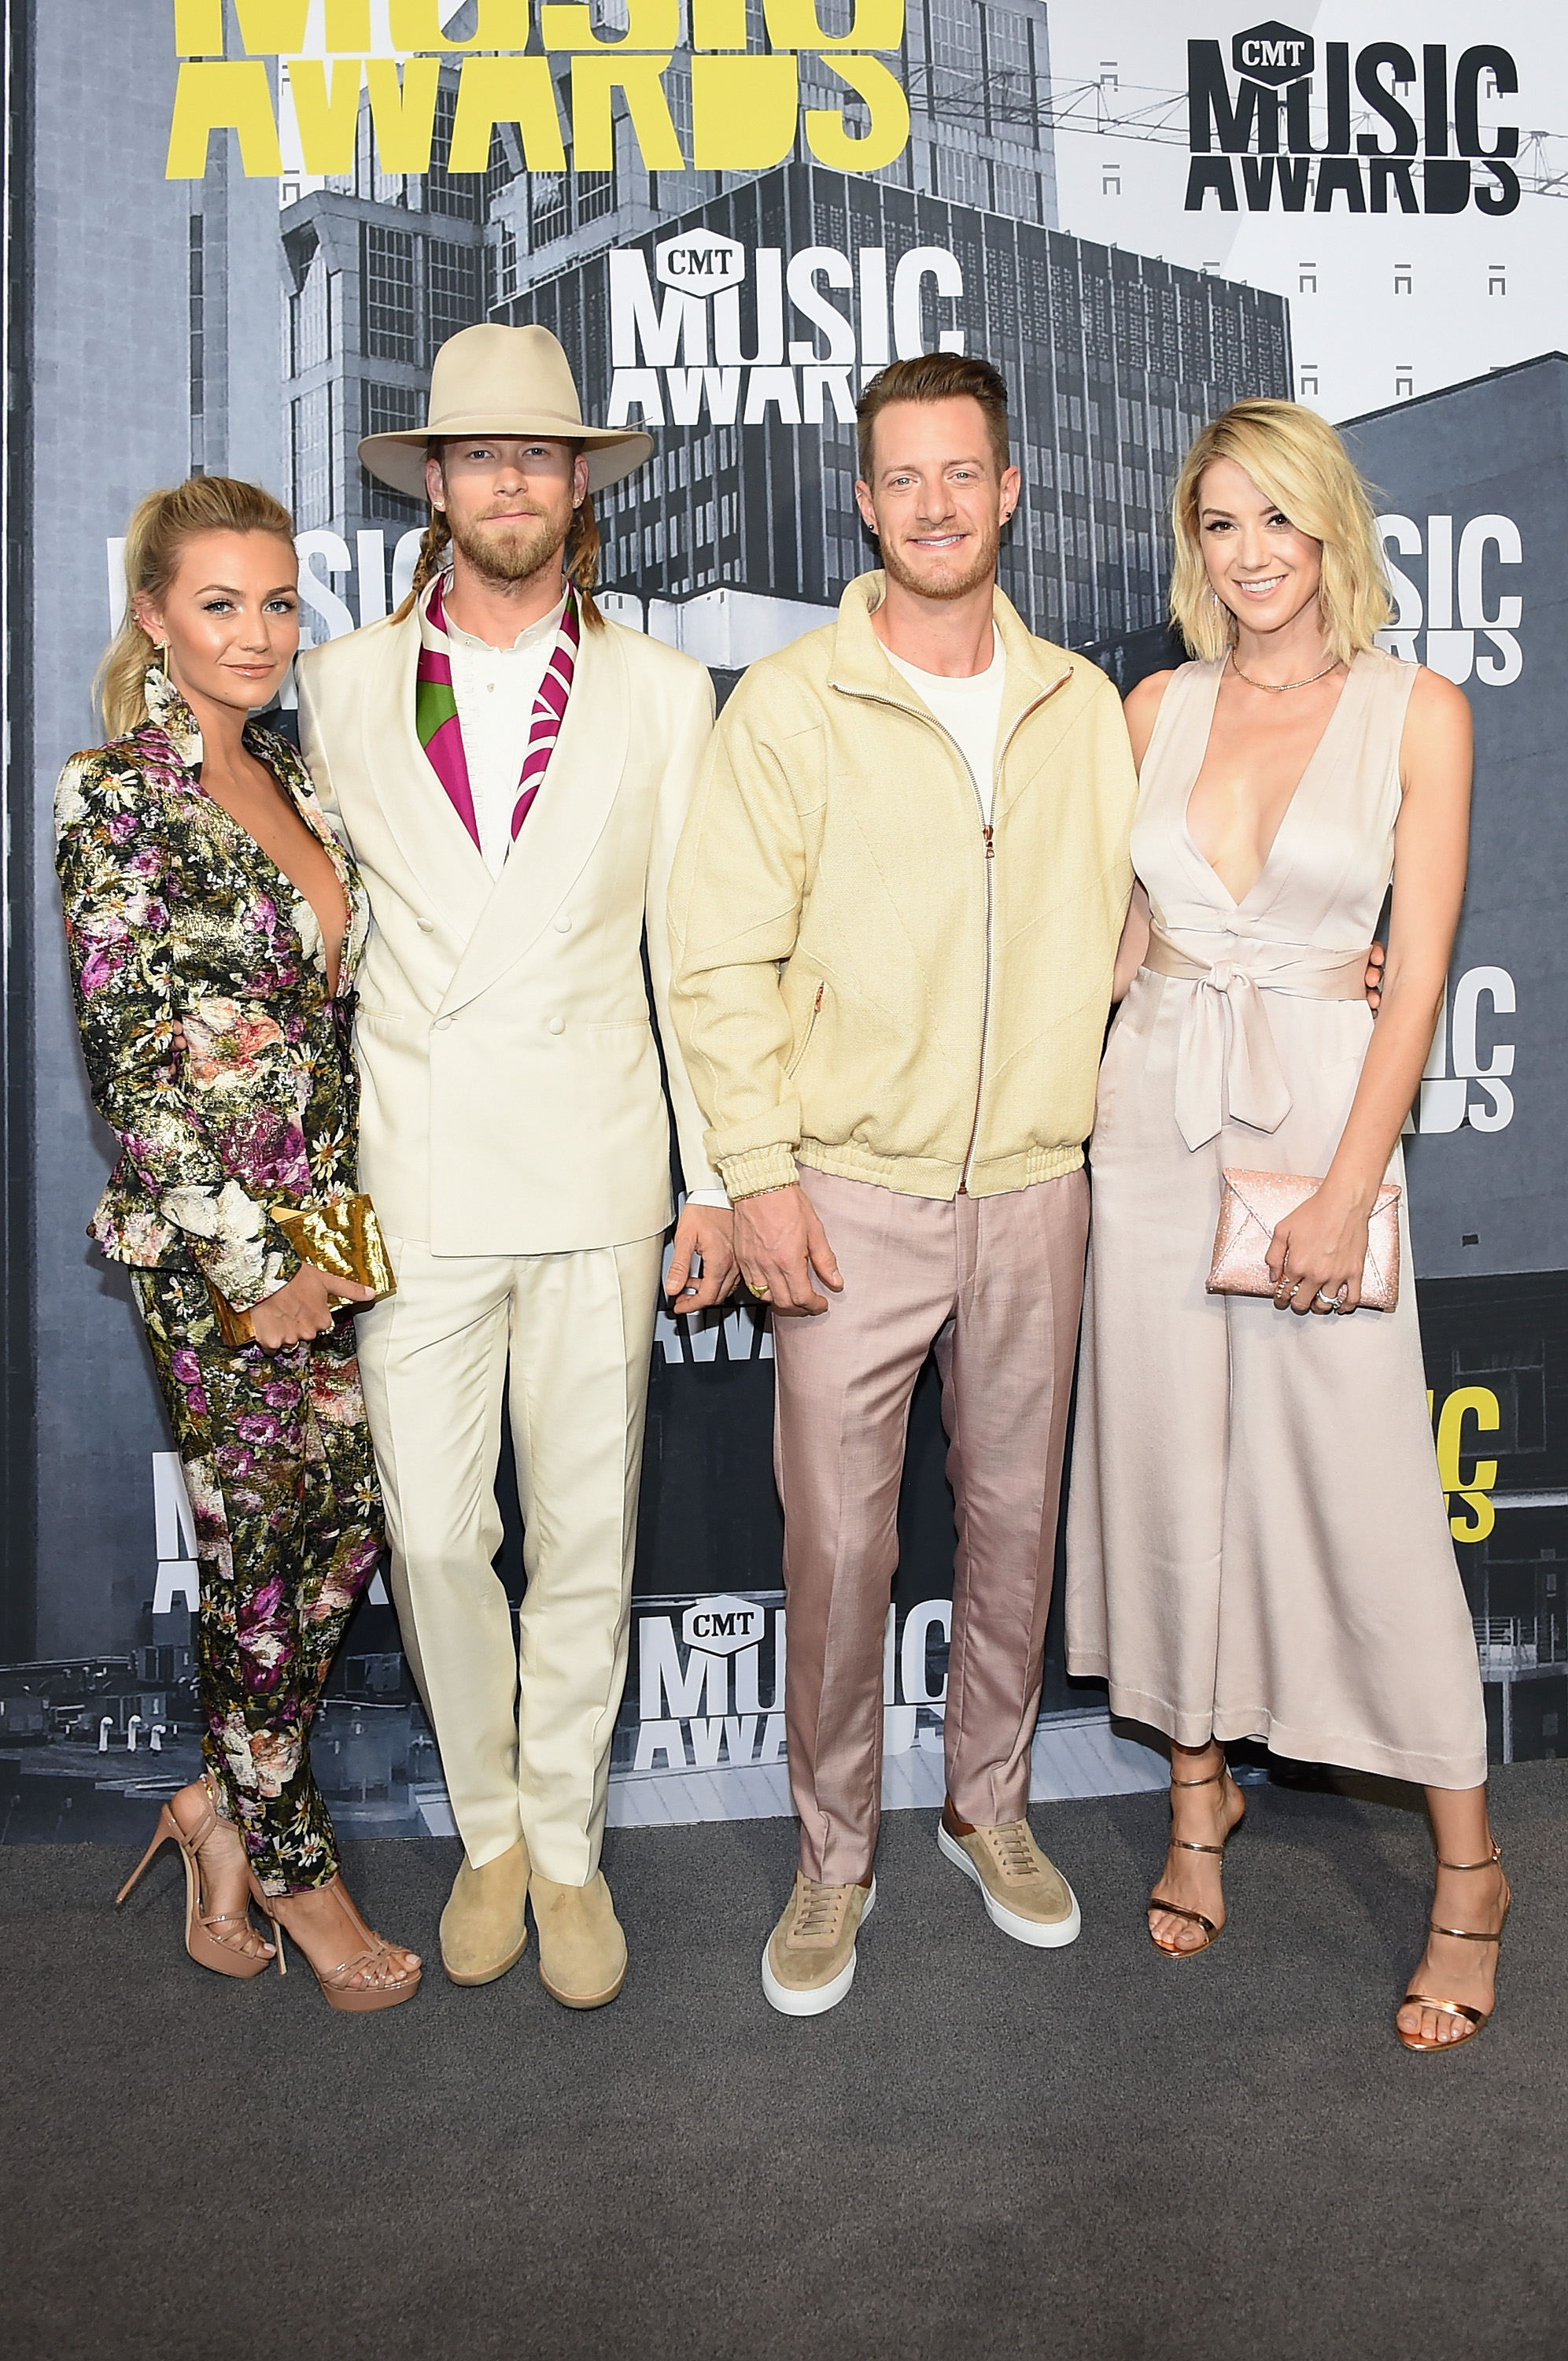 NASHVILLE, TN - JUNE 07: (L-R) Brittney Marie Cole, singers Brian Kelley and Tyler Hubbard of music group Florida Georgia Line, and Hayley Stommel attend the attend the 2017 CMT Music Awards at the Music City Center on June 7, 2017 in Nashville, Tennessee. (Photo by Michael Loccisano/Getty Images For CMT)